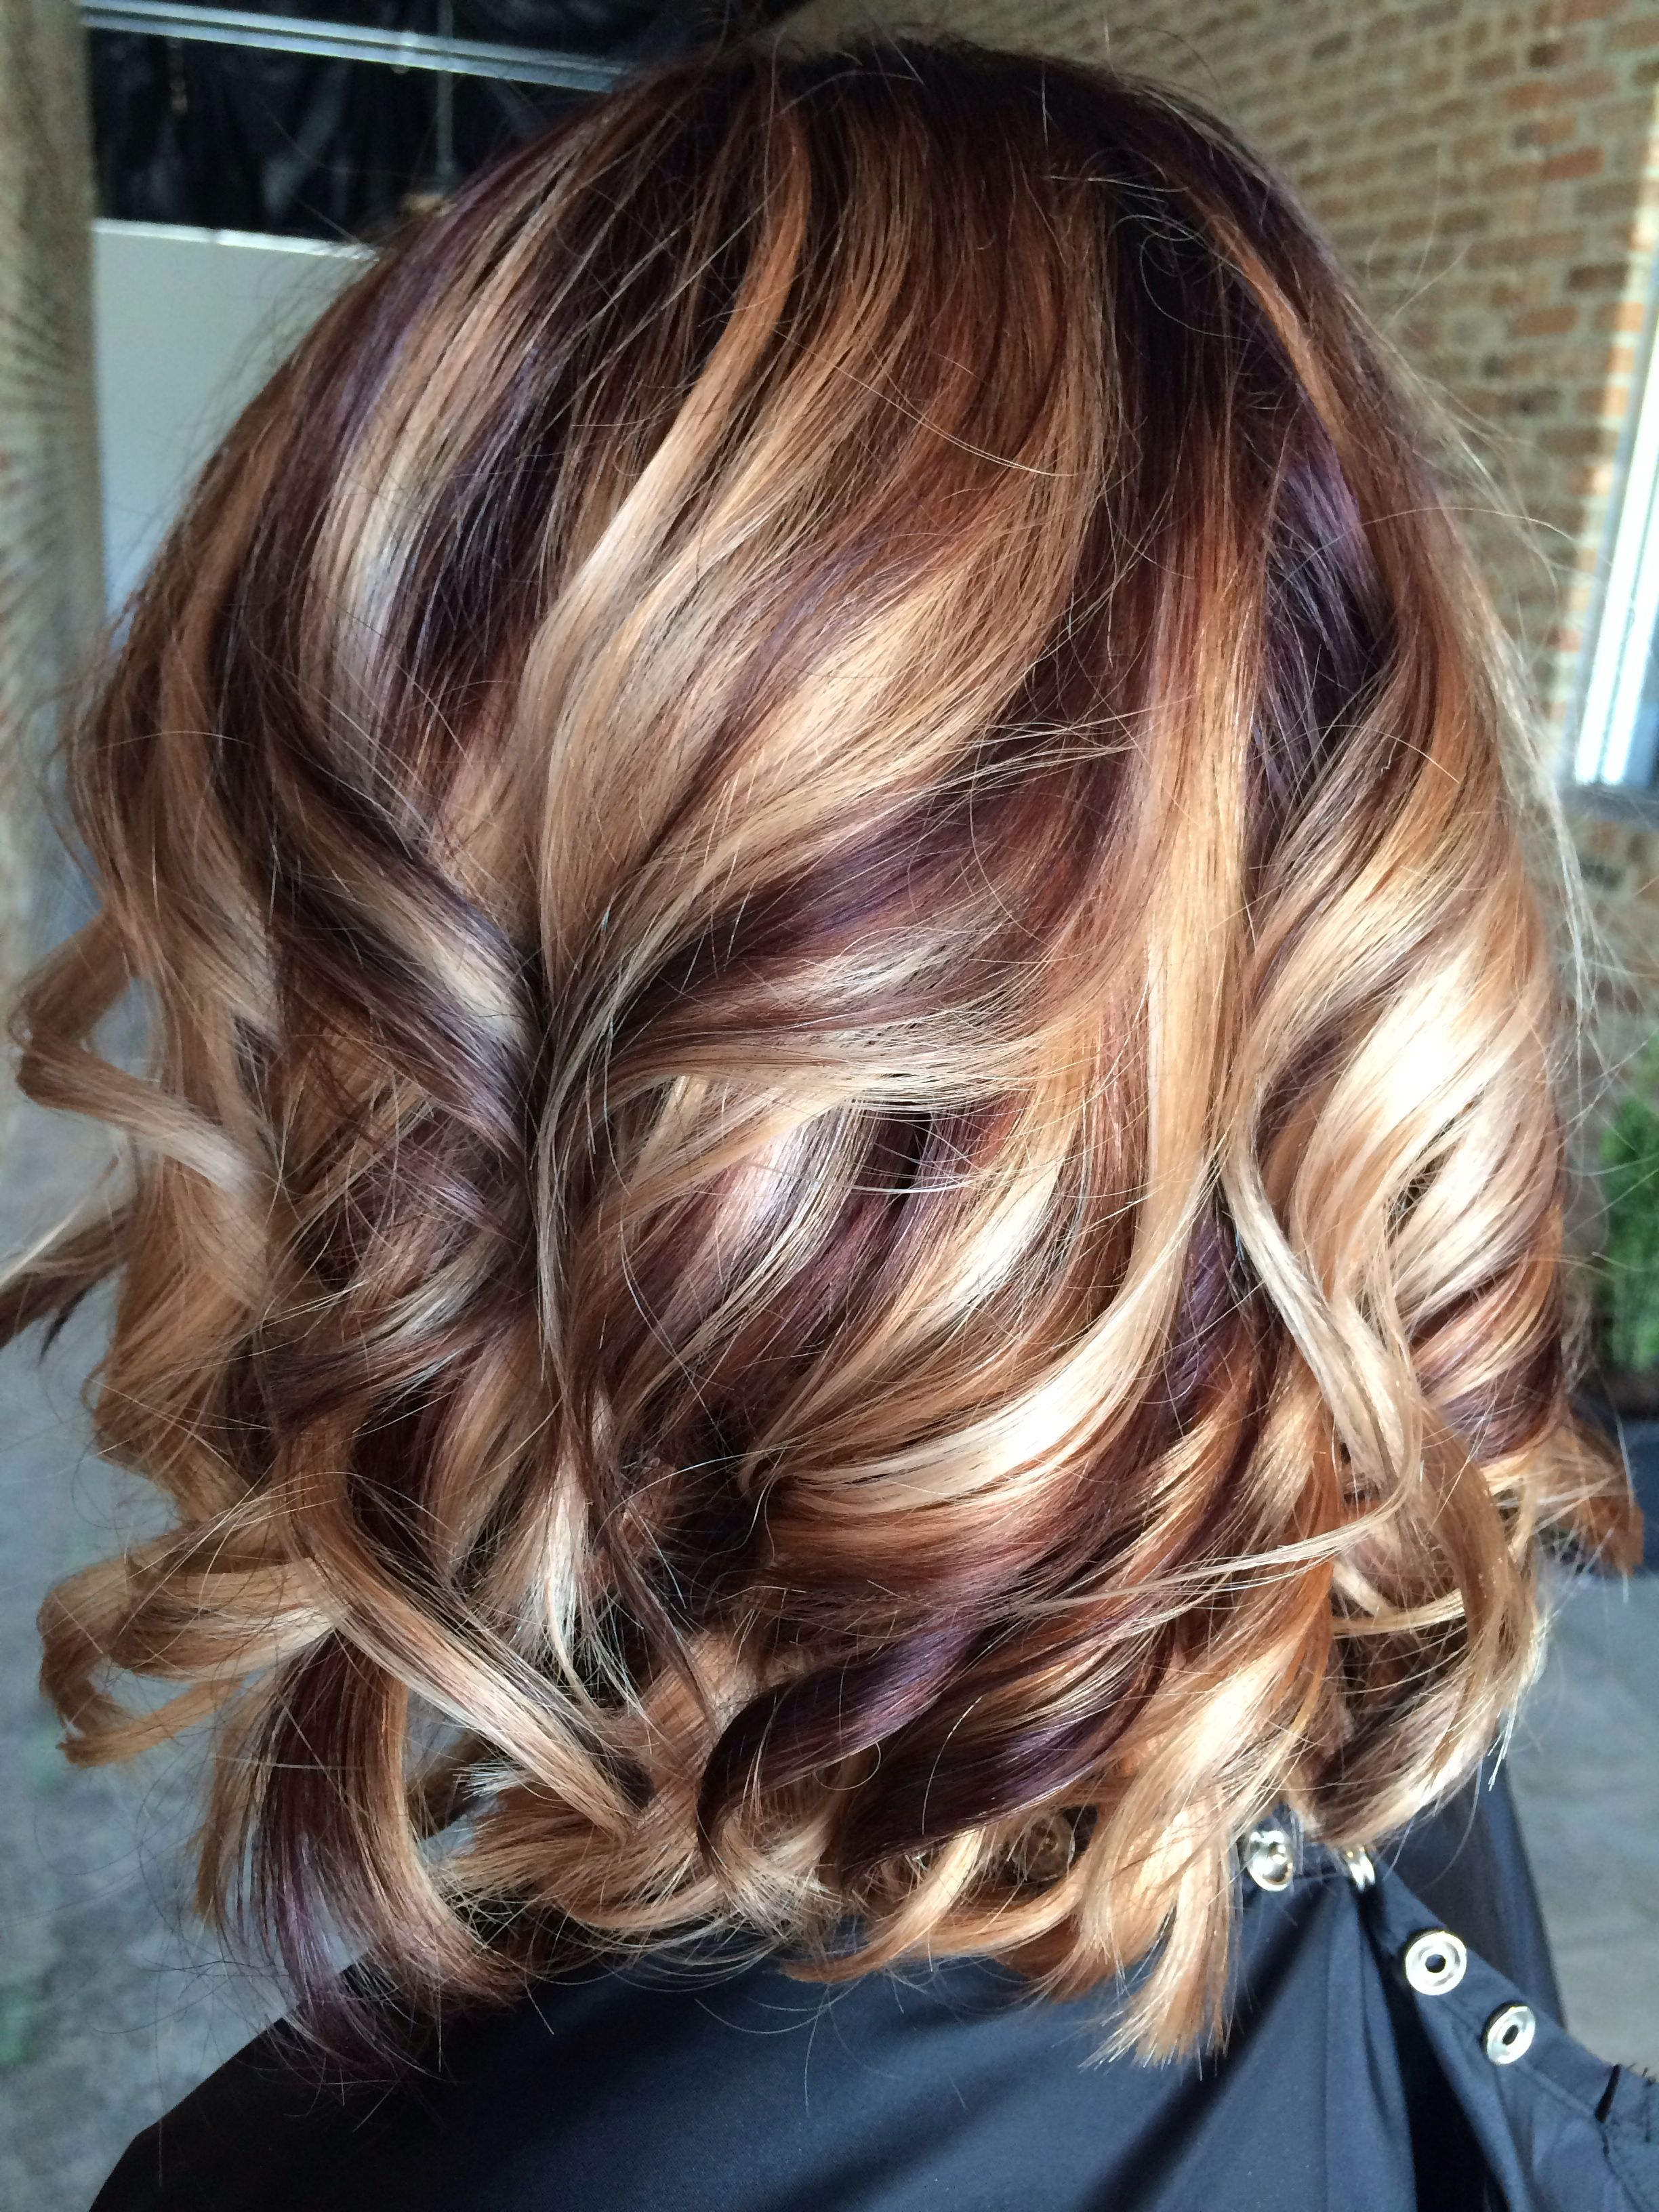 Short Hairstyles With Highlights And Lowlights Ribbons Of Color Mahogany Violet And Blonde Hairjordan I Love